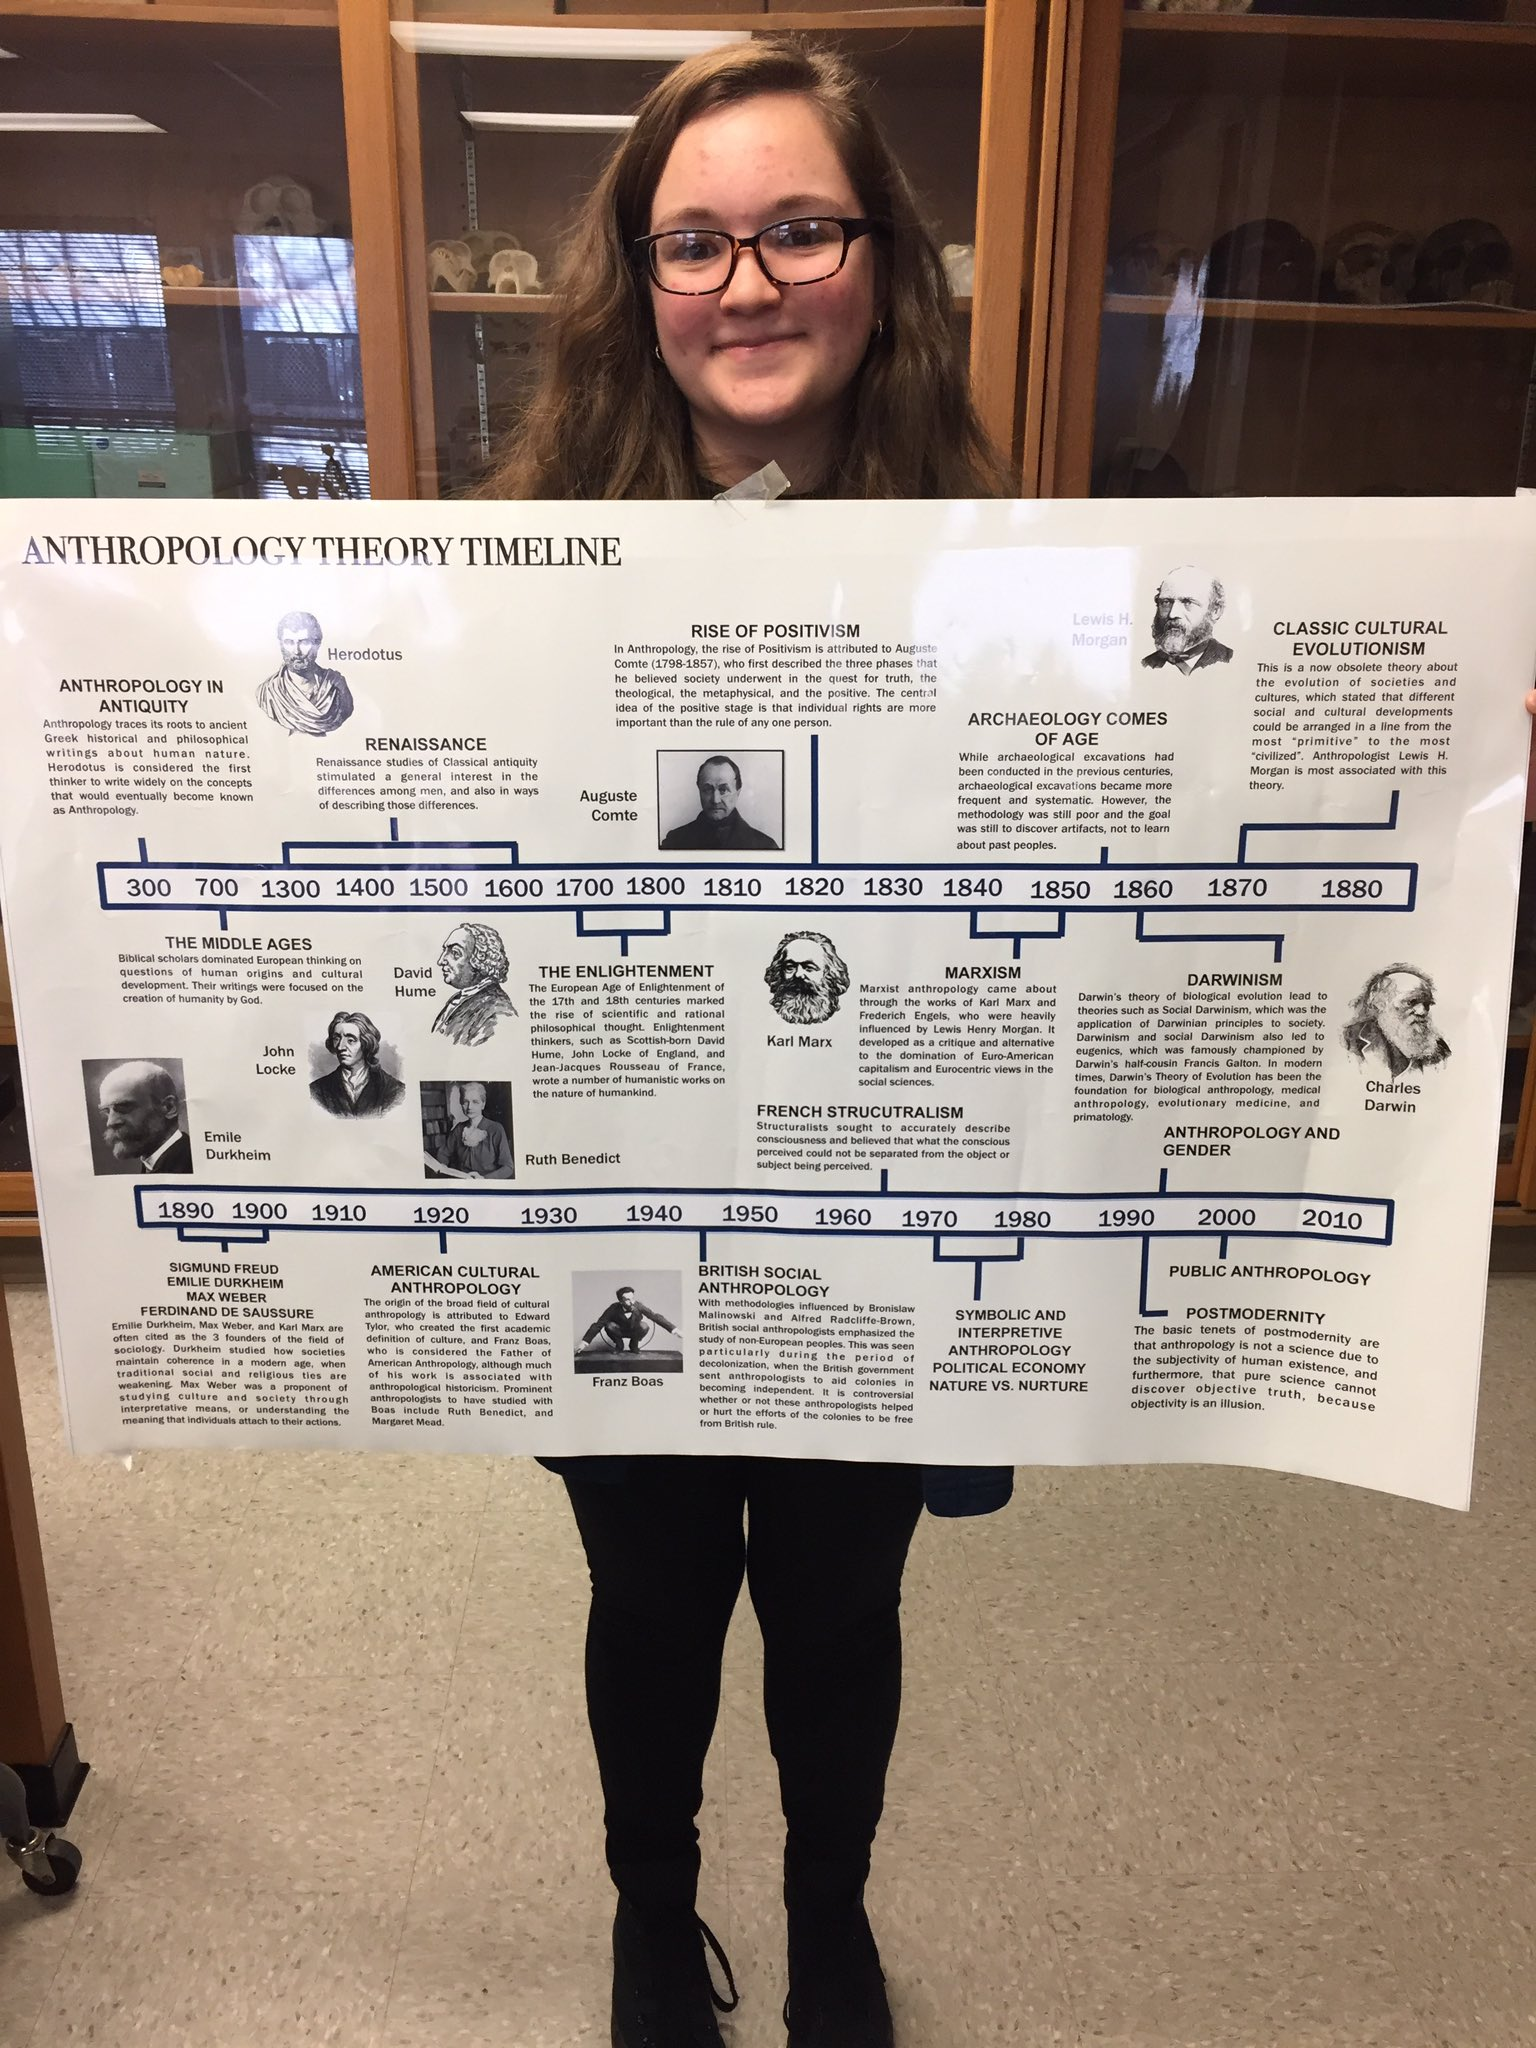 The anthropology theory timeline I created for #anthroday https://t.co/Oa8XDZBc1d